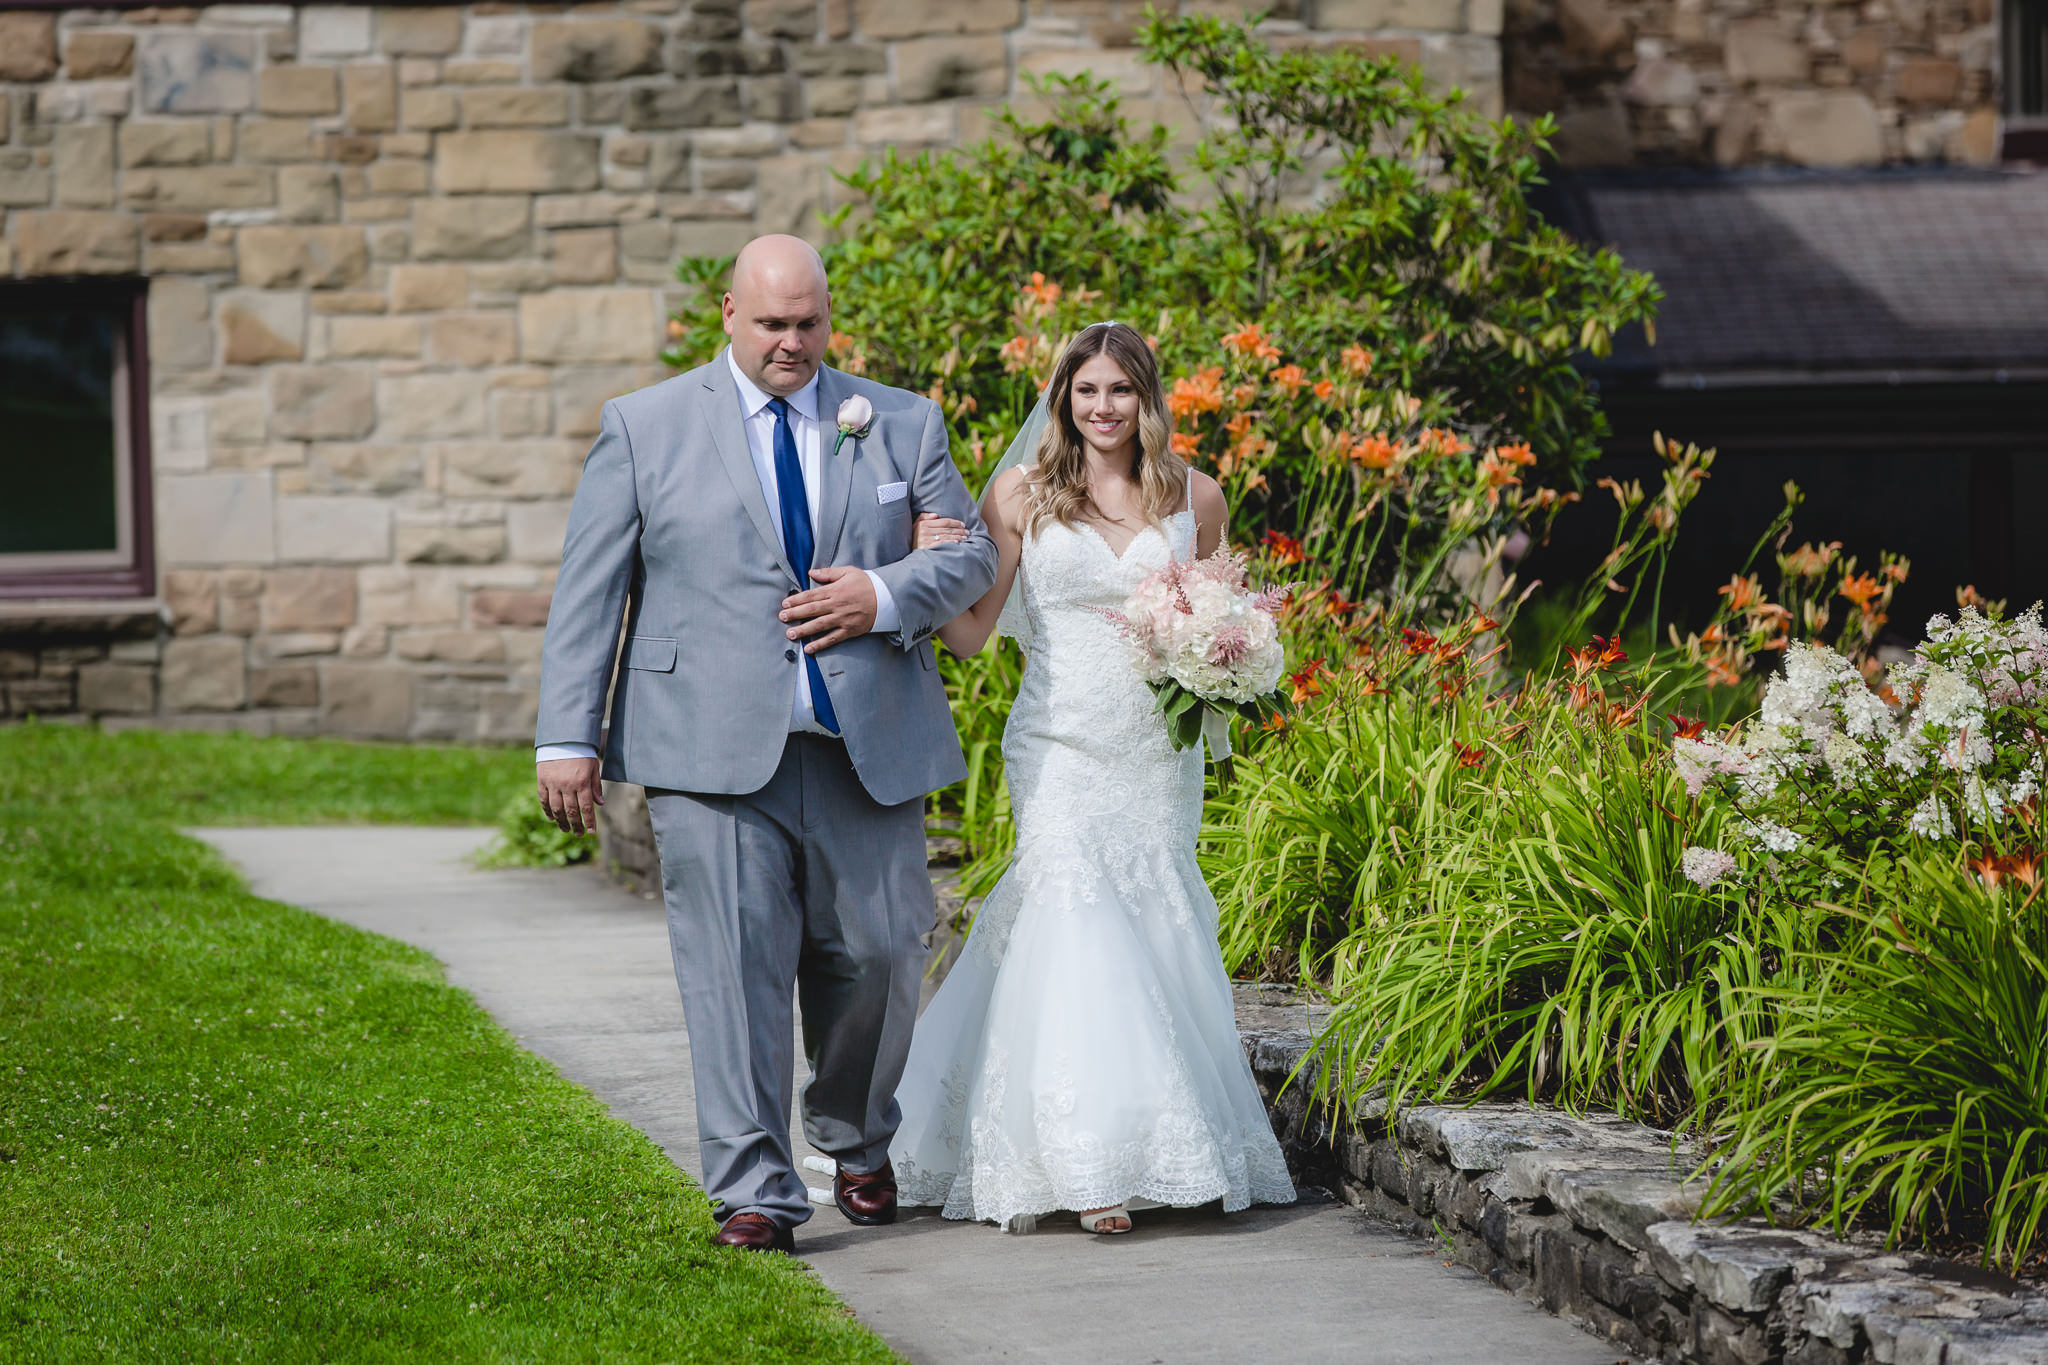 Father of the bride walks his daughter down the aisle at Hidden Valley Resort